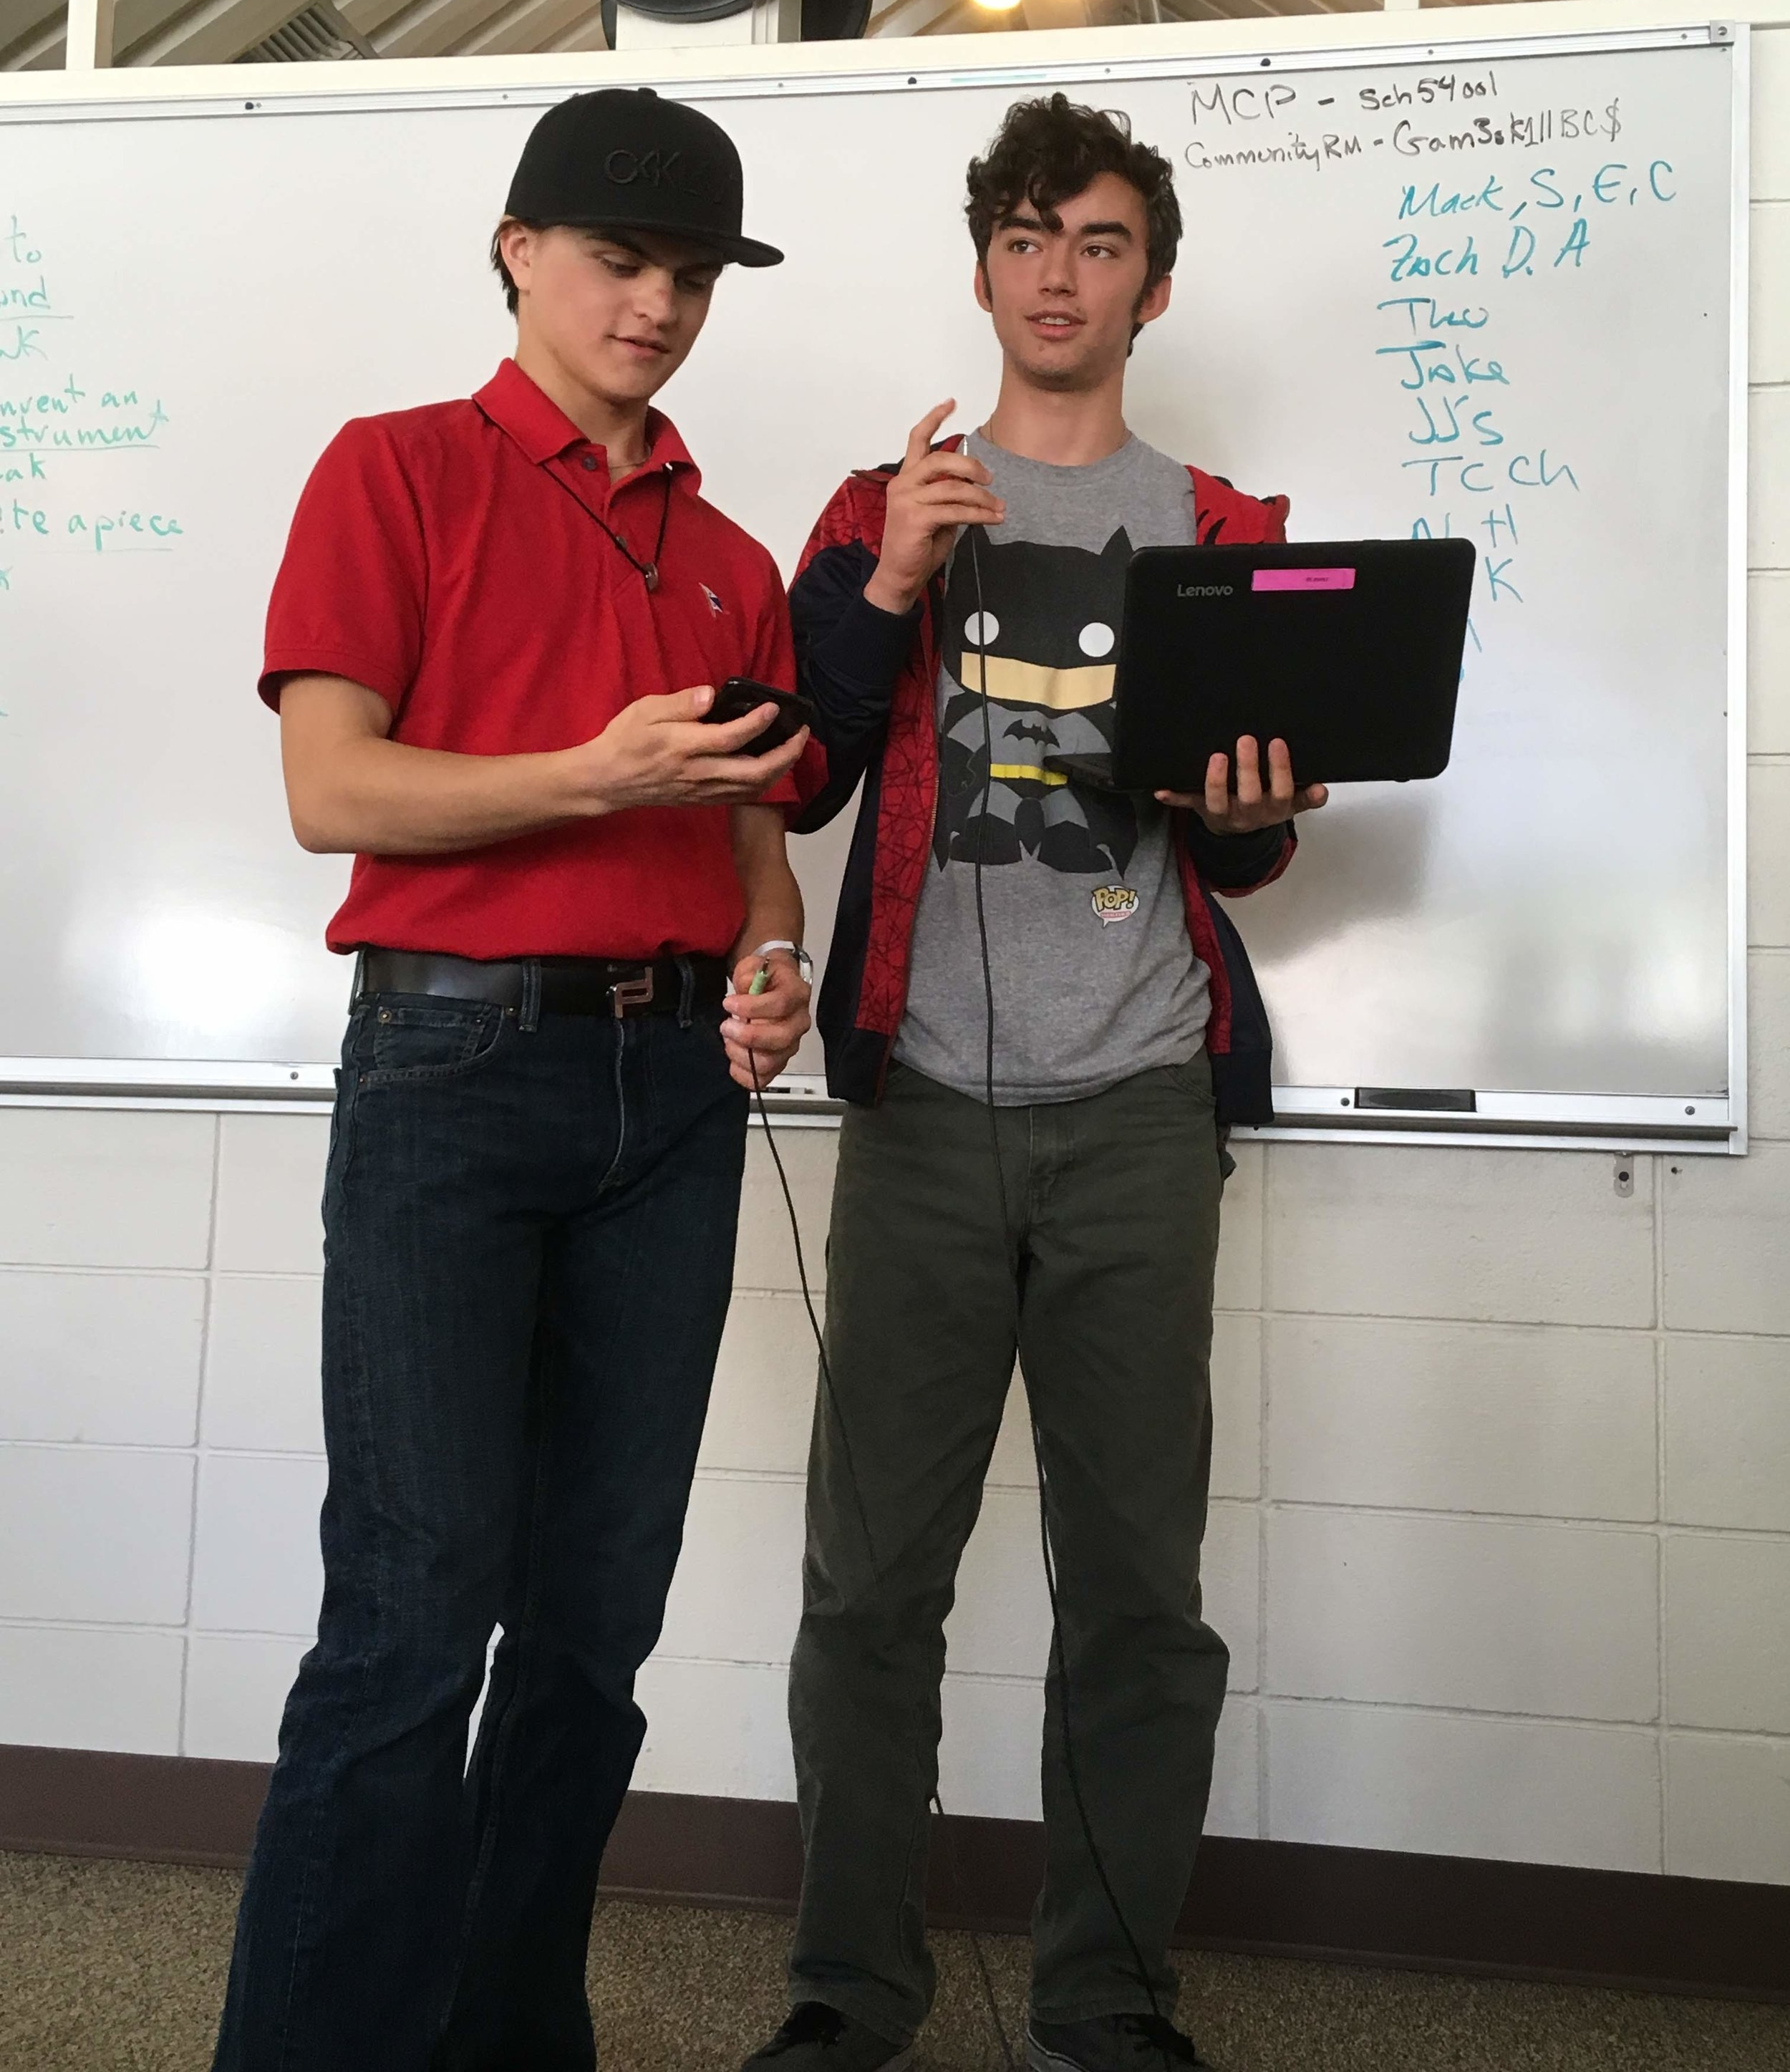 Two students working together during a college preparatory program